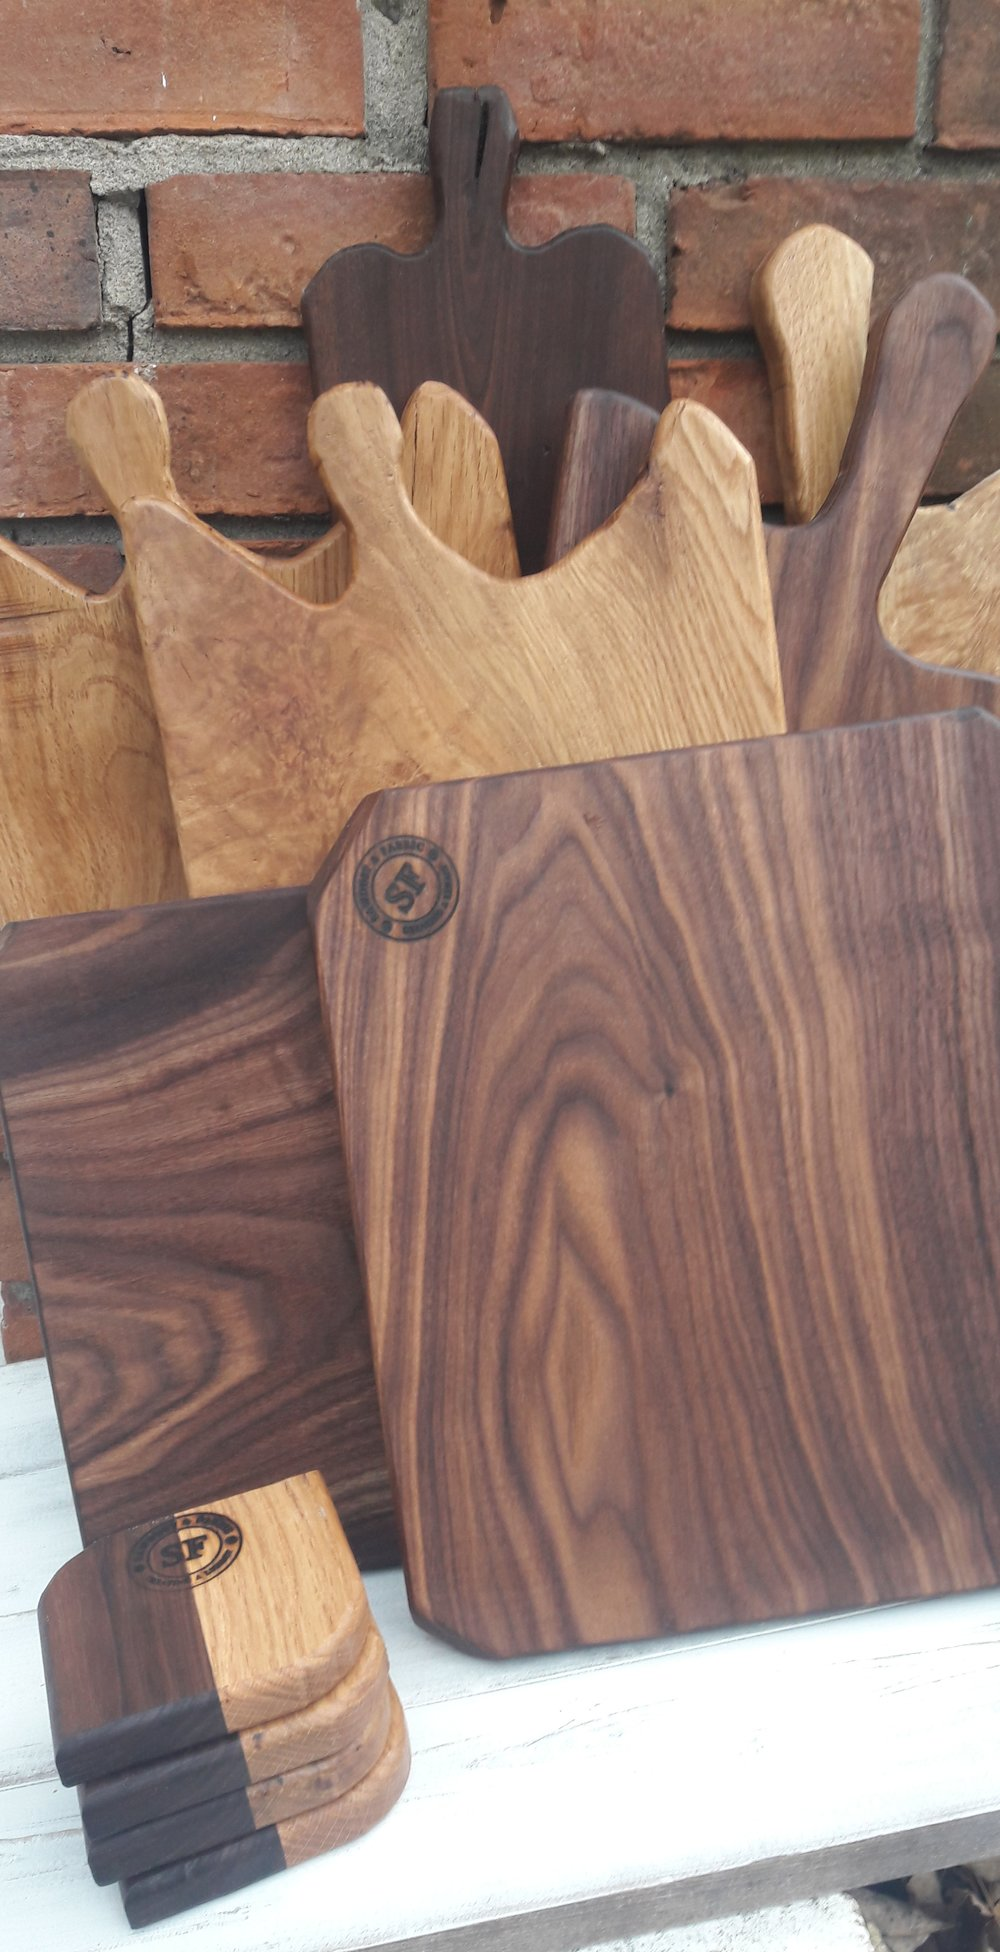 Handmade Cutting Boards & Serving Boards - Here at Sawdust & fabric I  always try to push my creativity to new levels. Custom cutting and serving boards from a mixture of exotic and traditional woods are sure to add extra warms and texture to your home and next gathering.